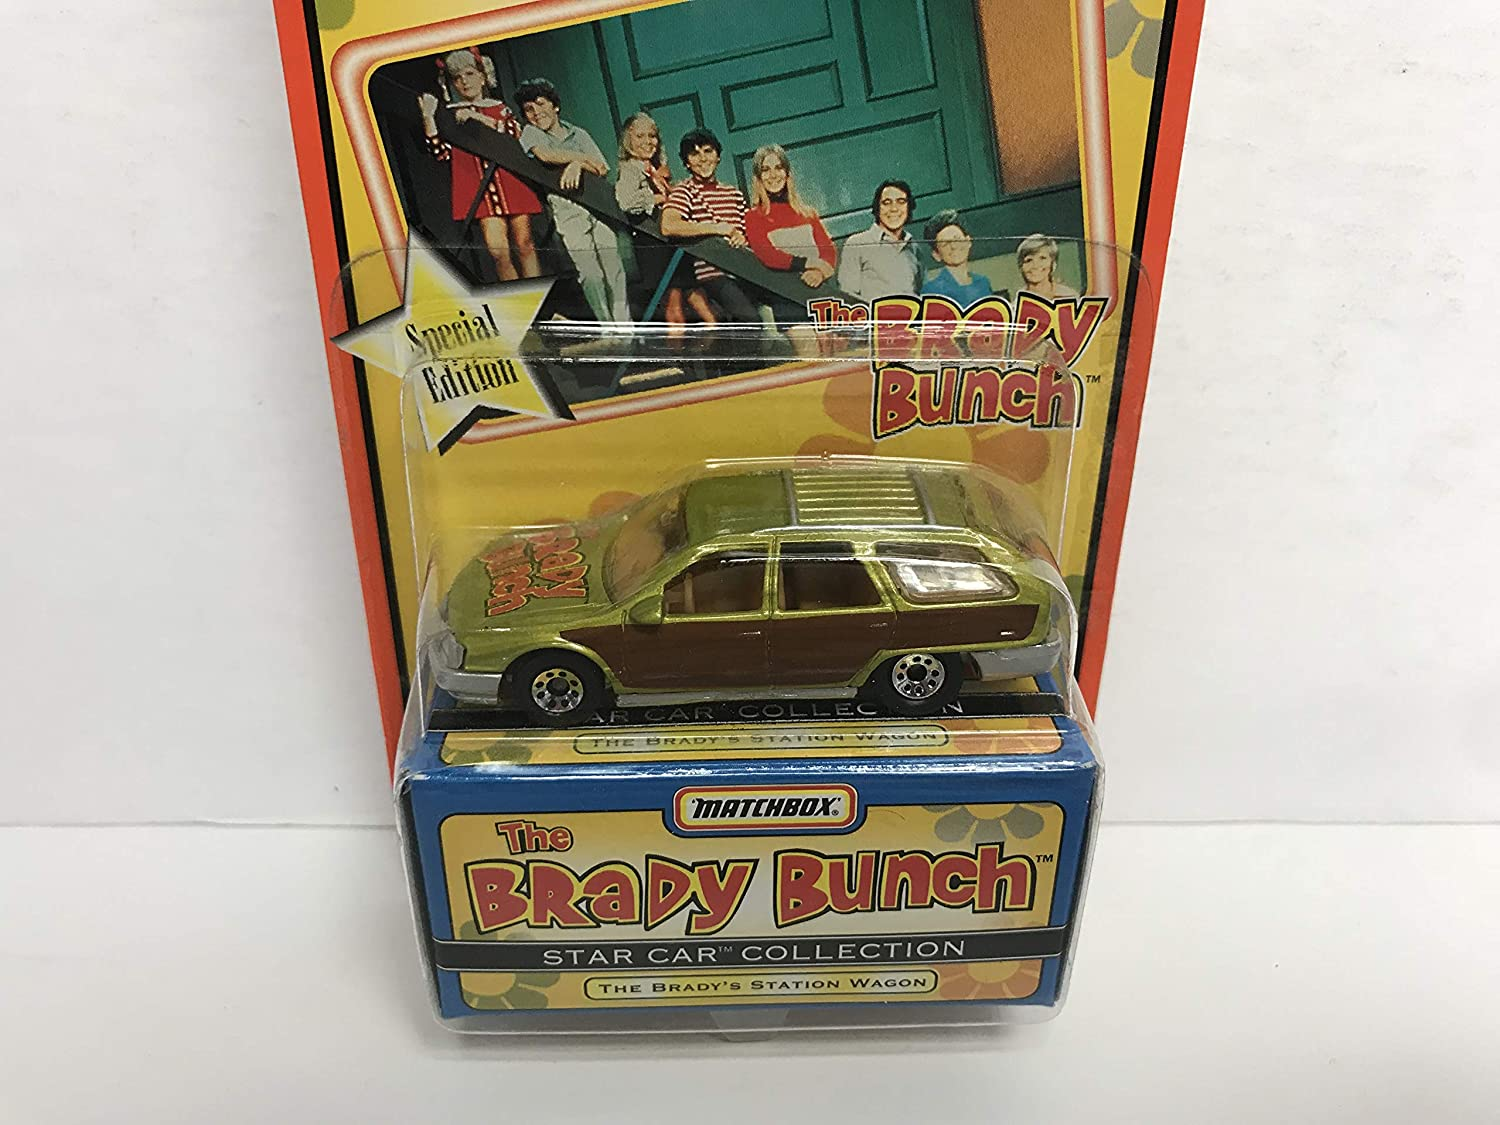 THE BRADY BUNCH Station Wagon special edition MATCHBOX Star Car Collection diecast 1/64 scale